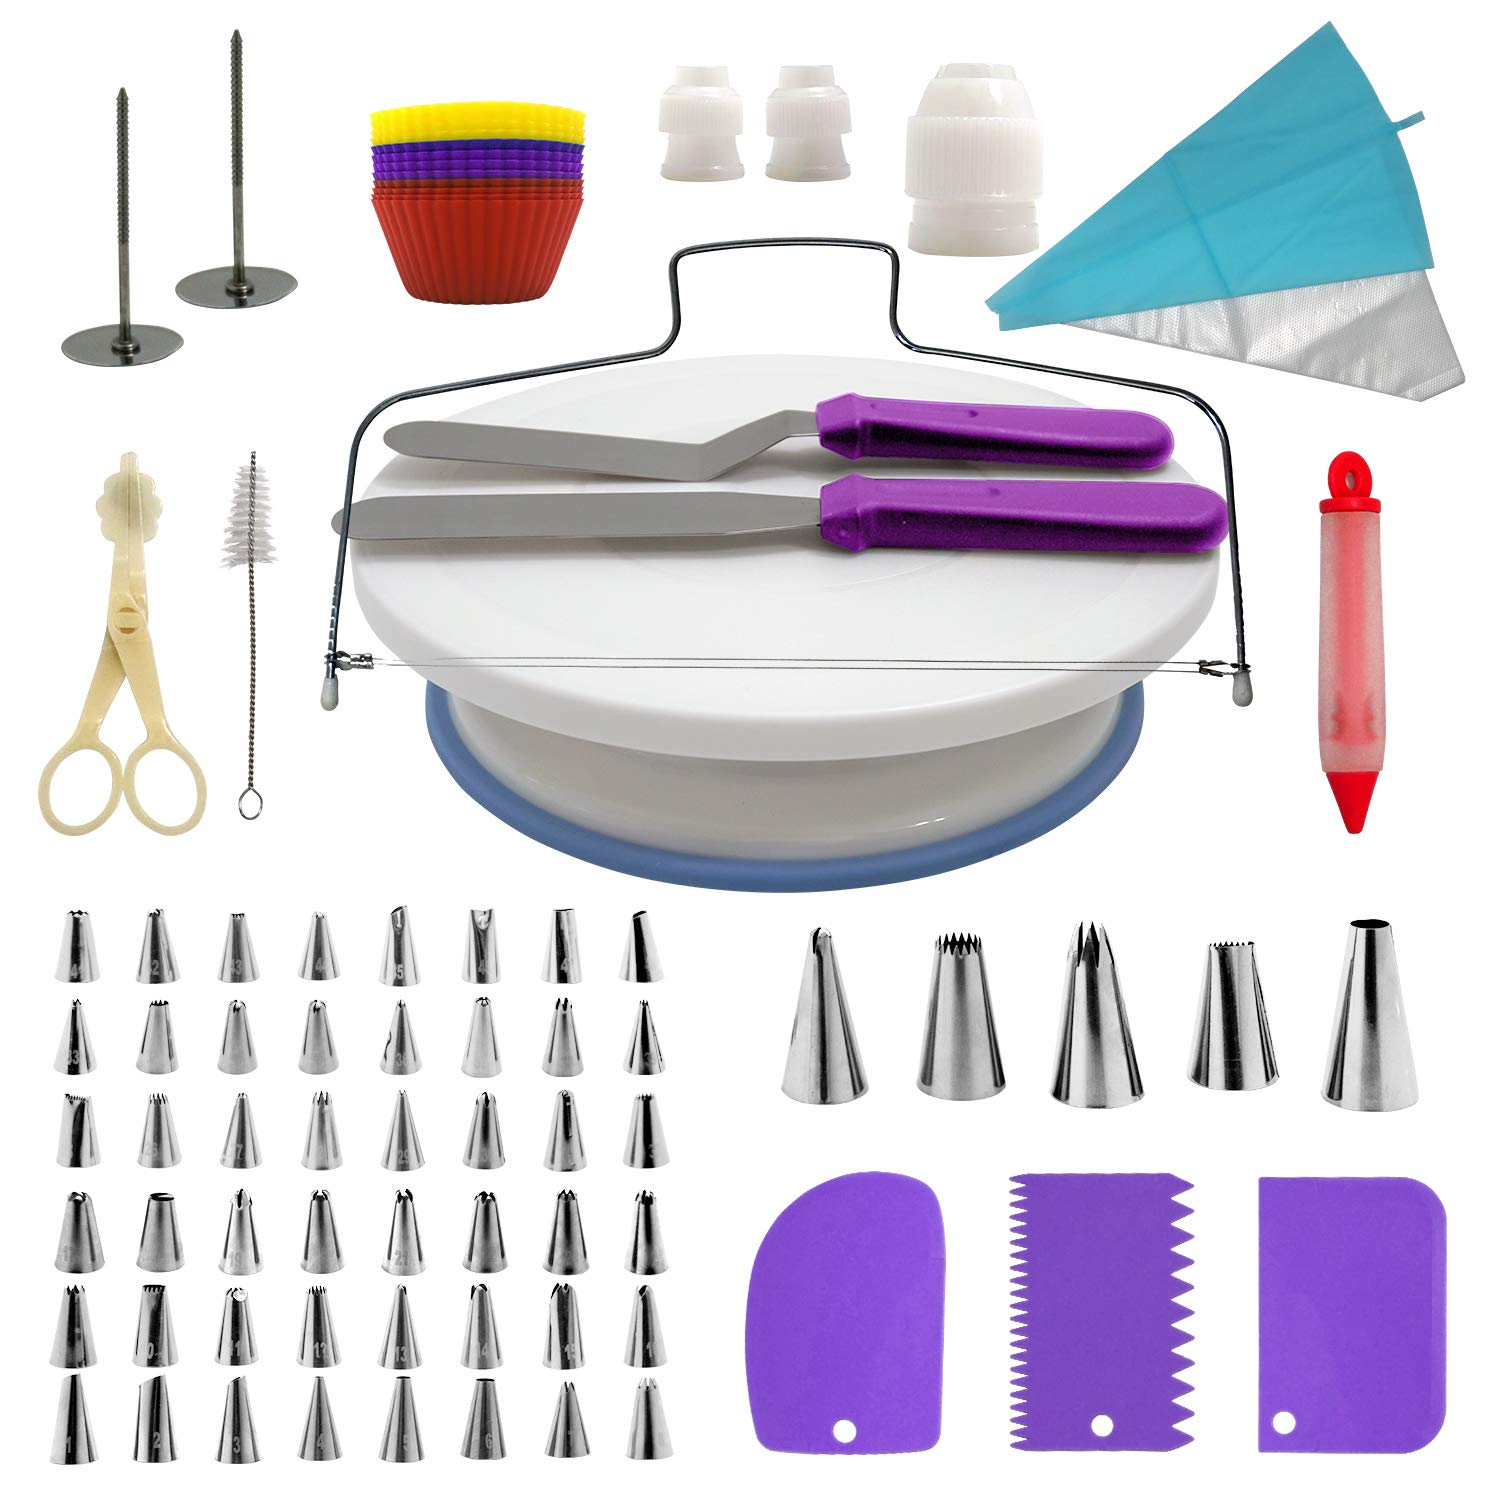 Cake Decorating Supplies Kit, 107 pieces - Cake Stand, Disposable and Reusable Piping Bags, Stainless Steel Piping Tips, Silicone Cupcake Molds, Cake Scrapers, Spatulas and many more baking supplies MAGCOR Kitchen